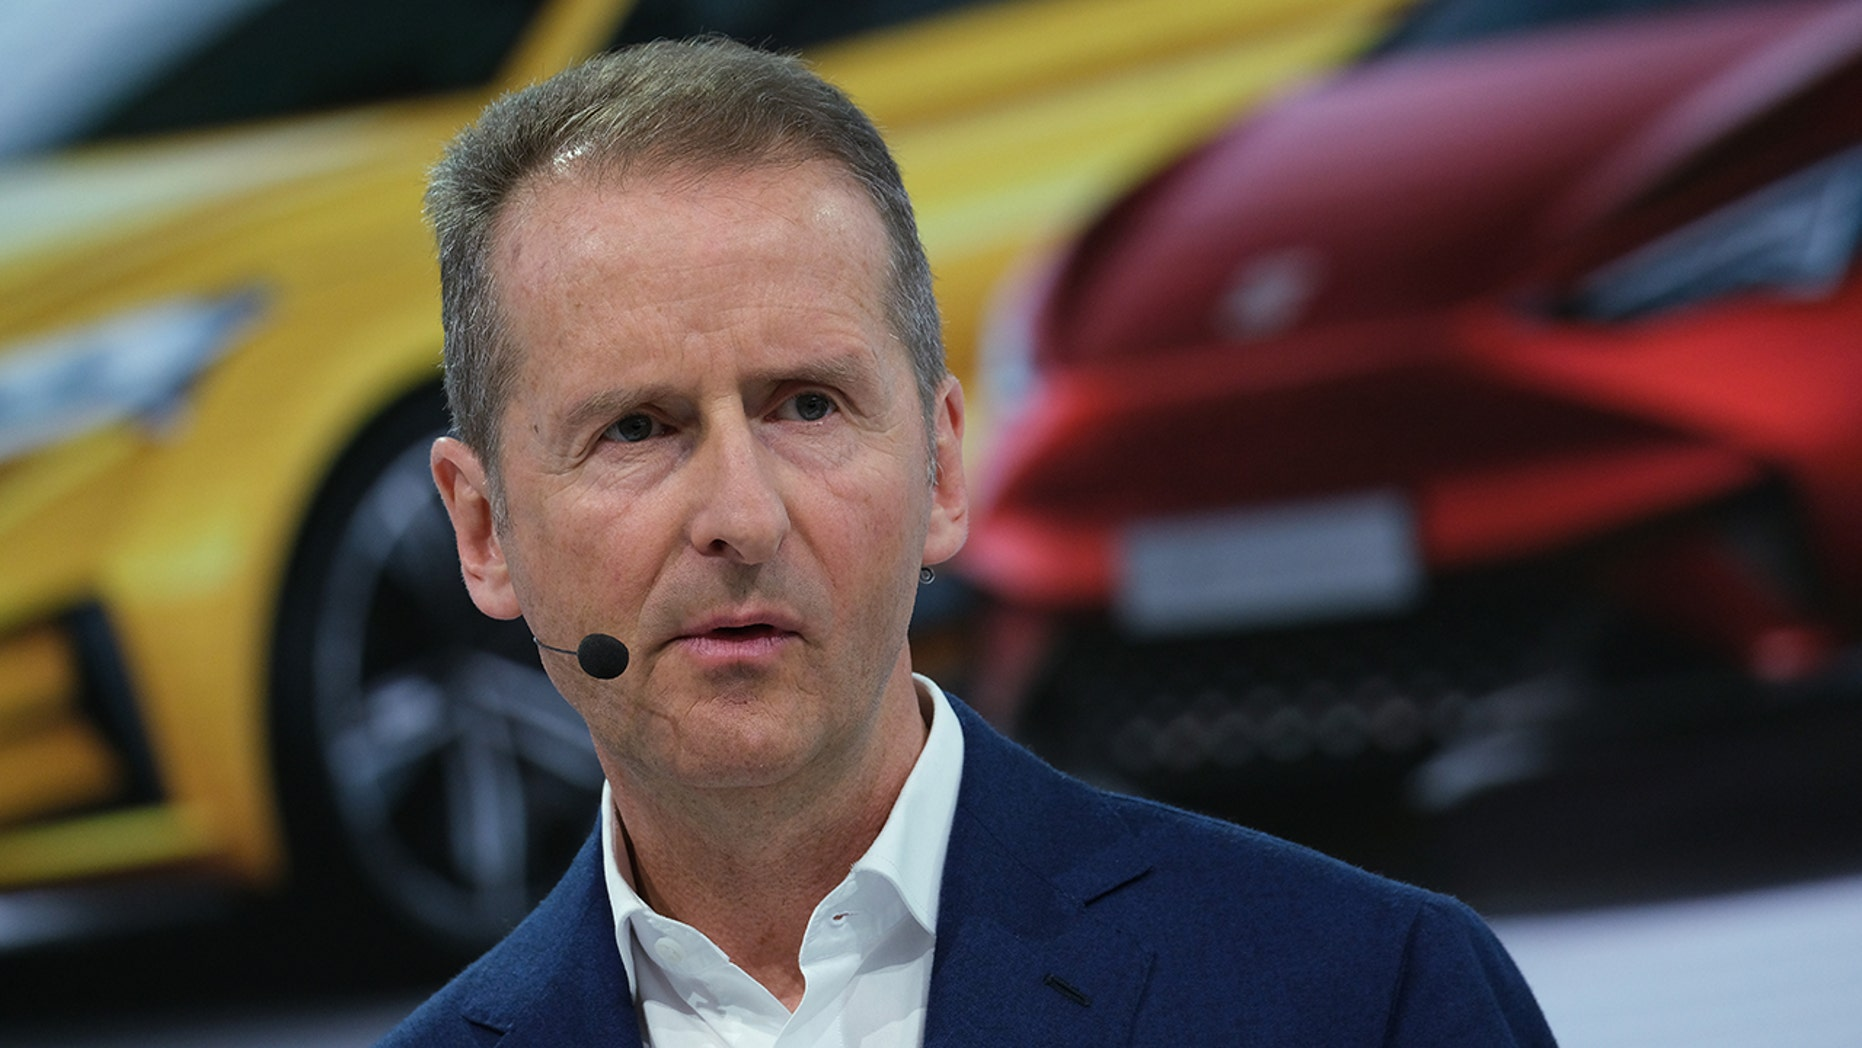 Herbert Diess, CEO of German automaker Volkswagen AG, speaks at the company's annual press conference at Volkswagen headquarters on March 12, 2019 in Wolfsburg, Germany.